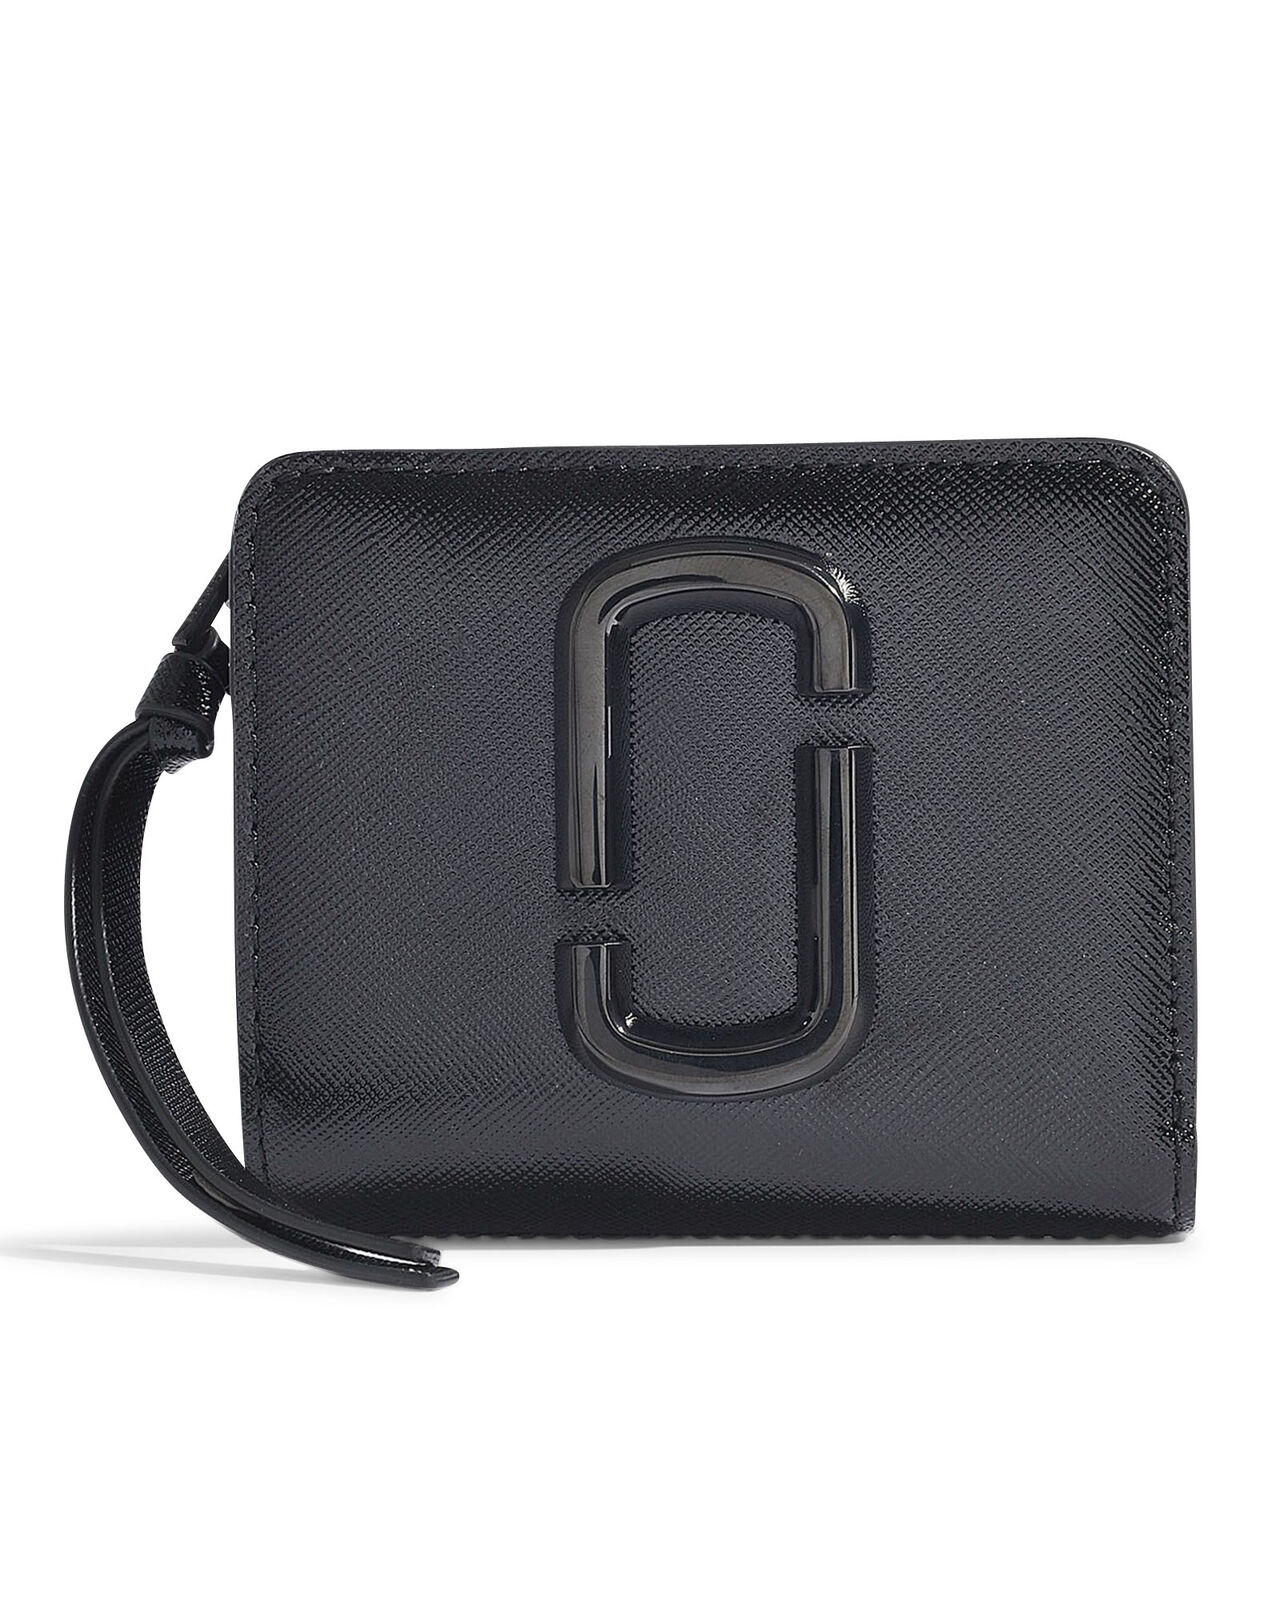 MARC JACOBS Wallet Snapshot DTM Mini Compact in Black Leather 100% Authentic